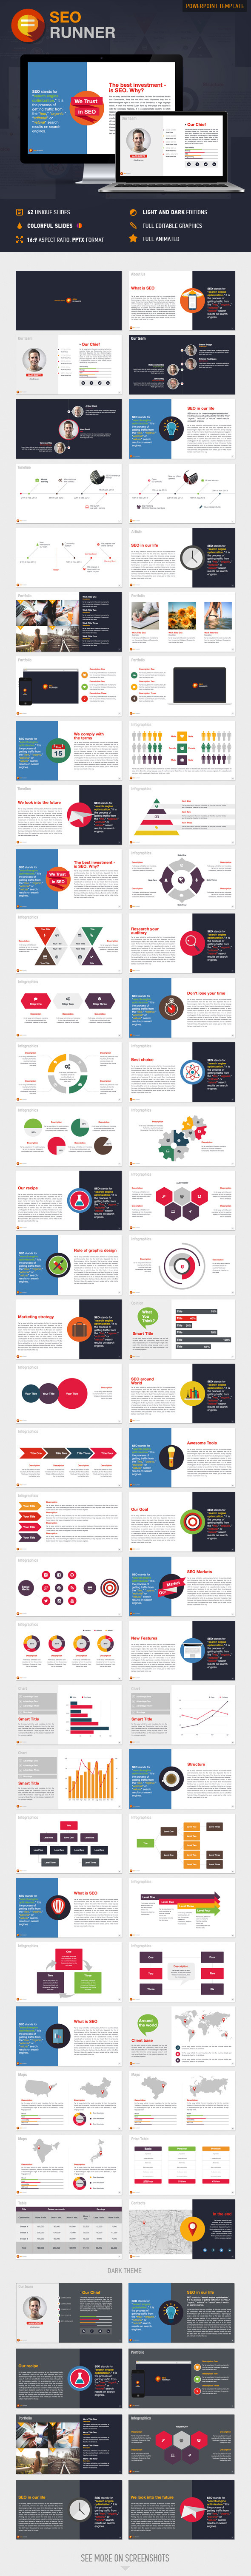 GraphicRiver SEO Runner PowerPoint Presentation Template 9643868